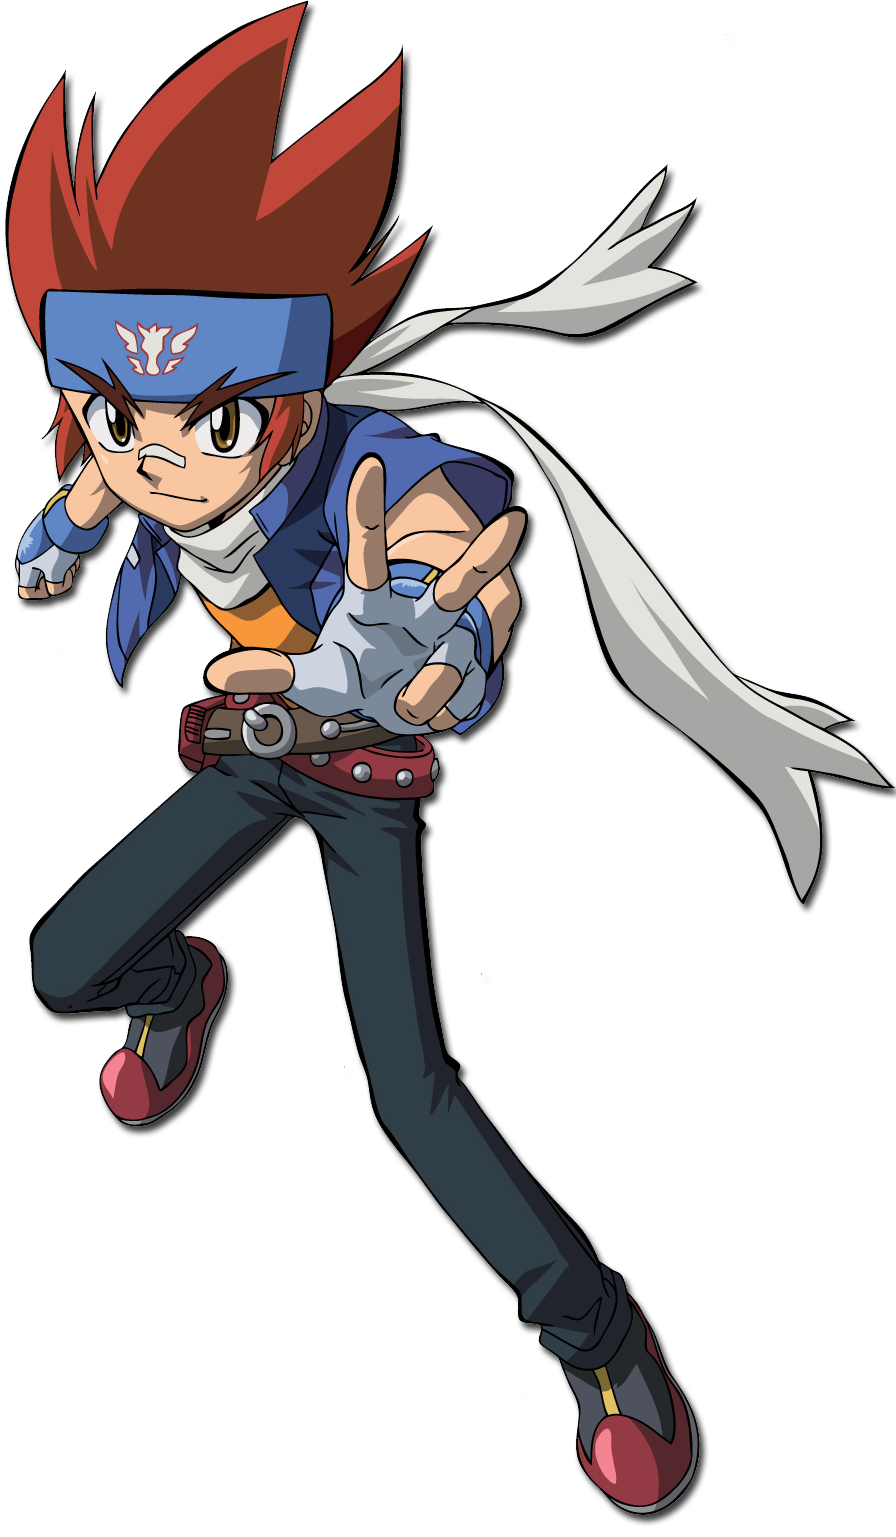 gingka metal furypng - Beyblade Metal Fury Coloring Pages